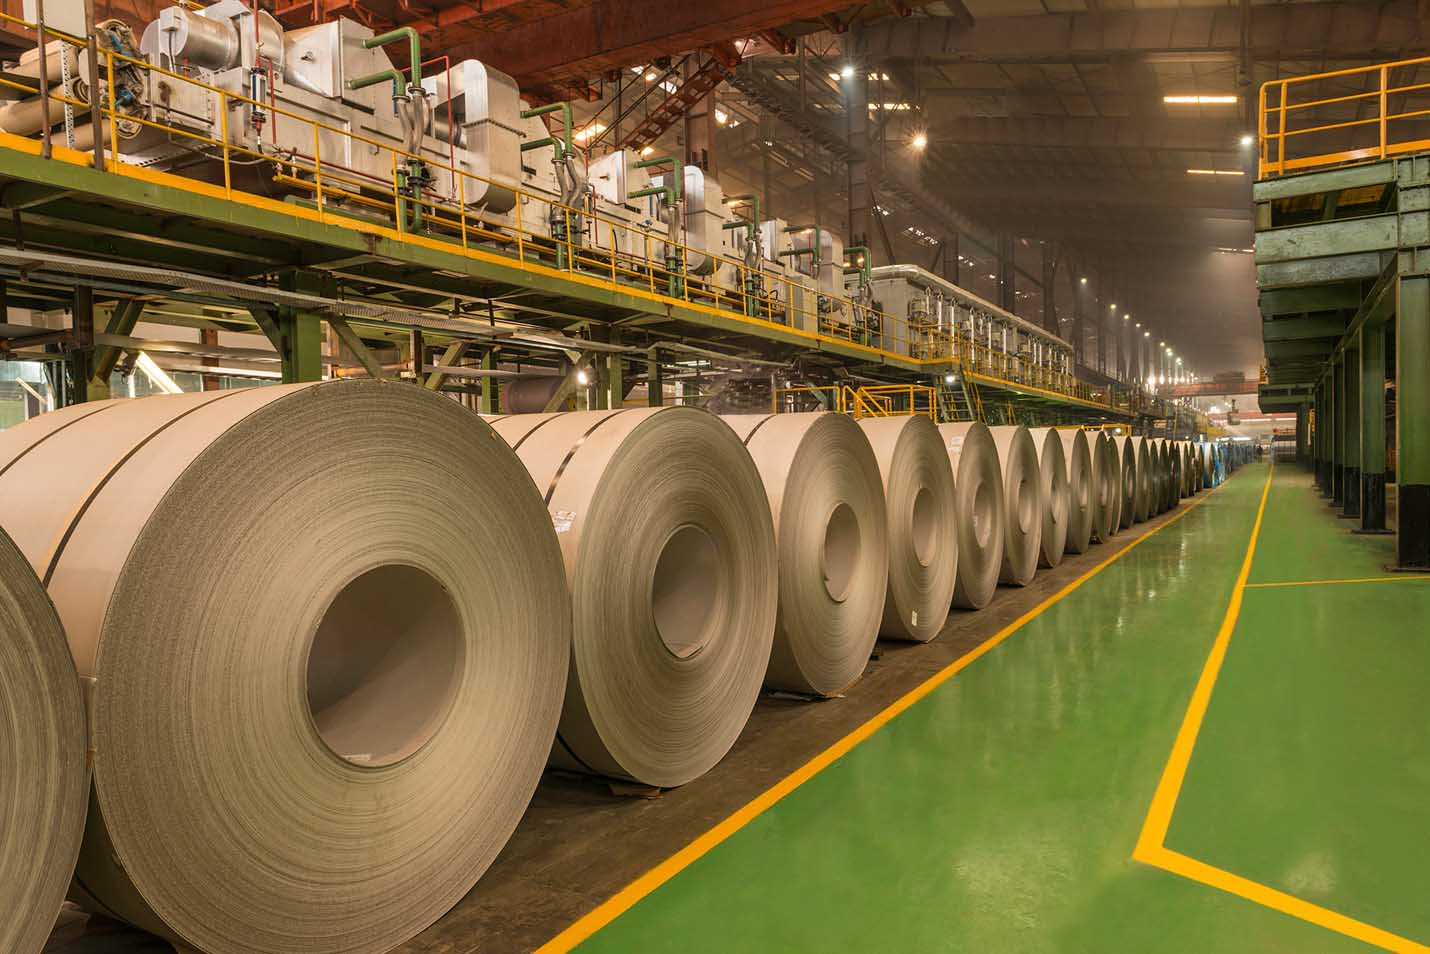 Cold Rolled Stainless Steel coils at Jindal Stainless plant in Hisar, Haryana